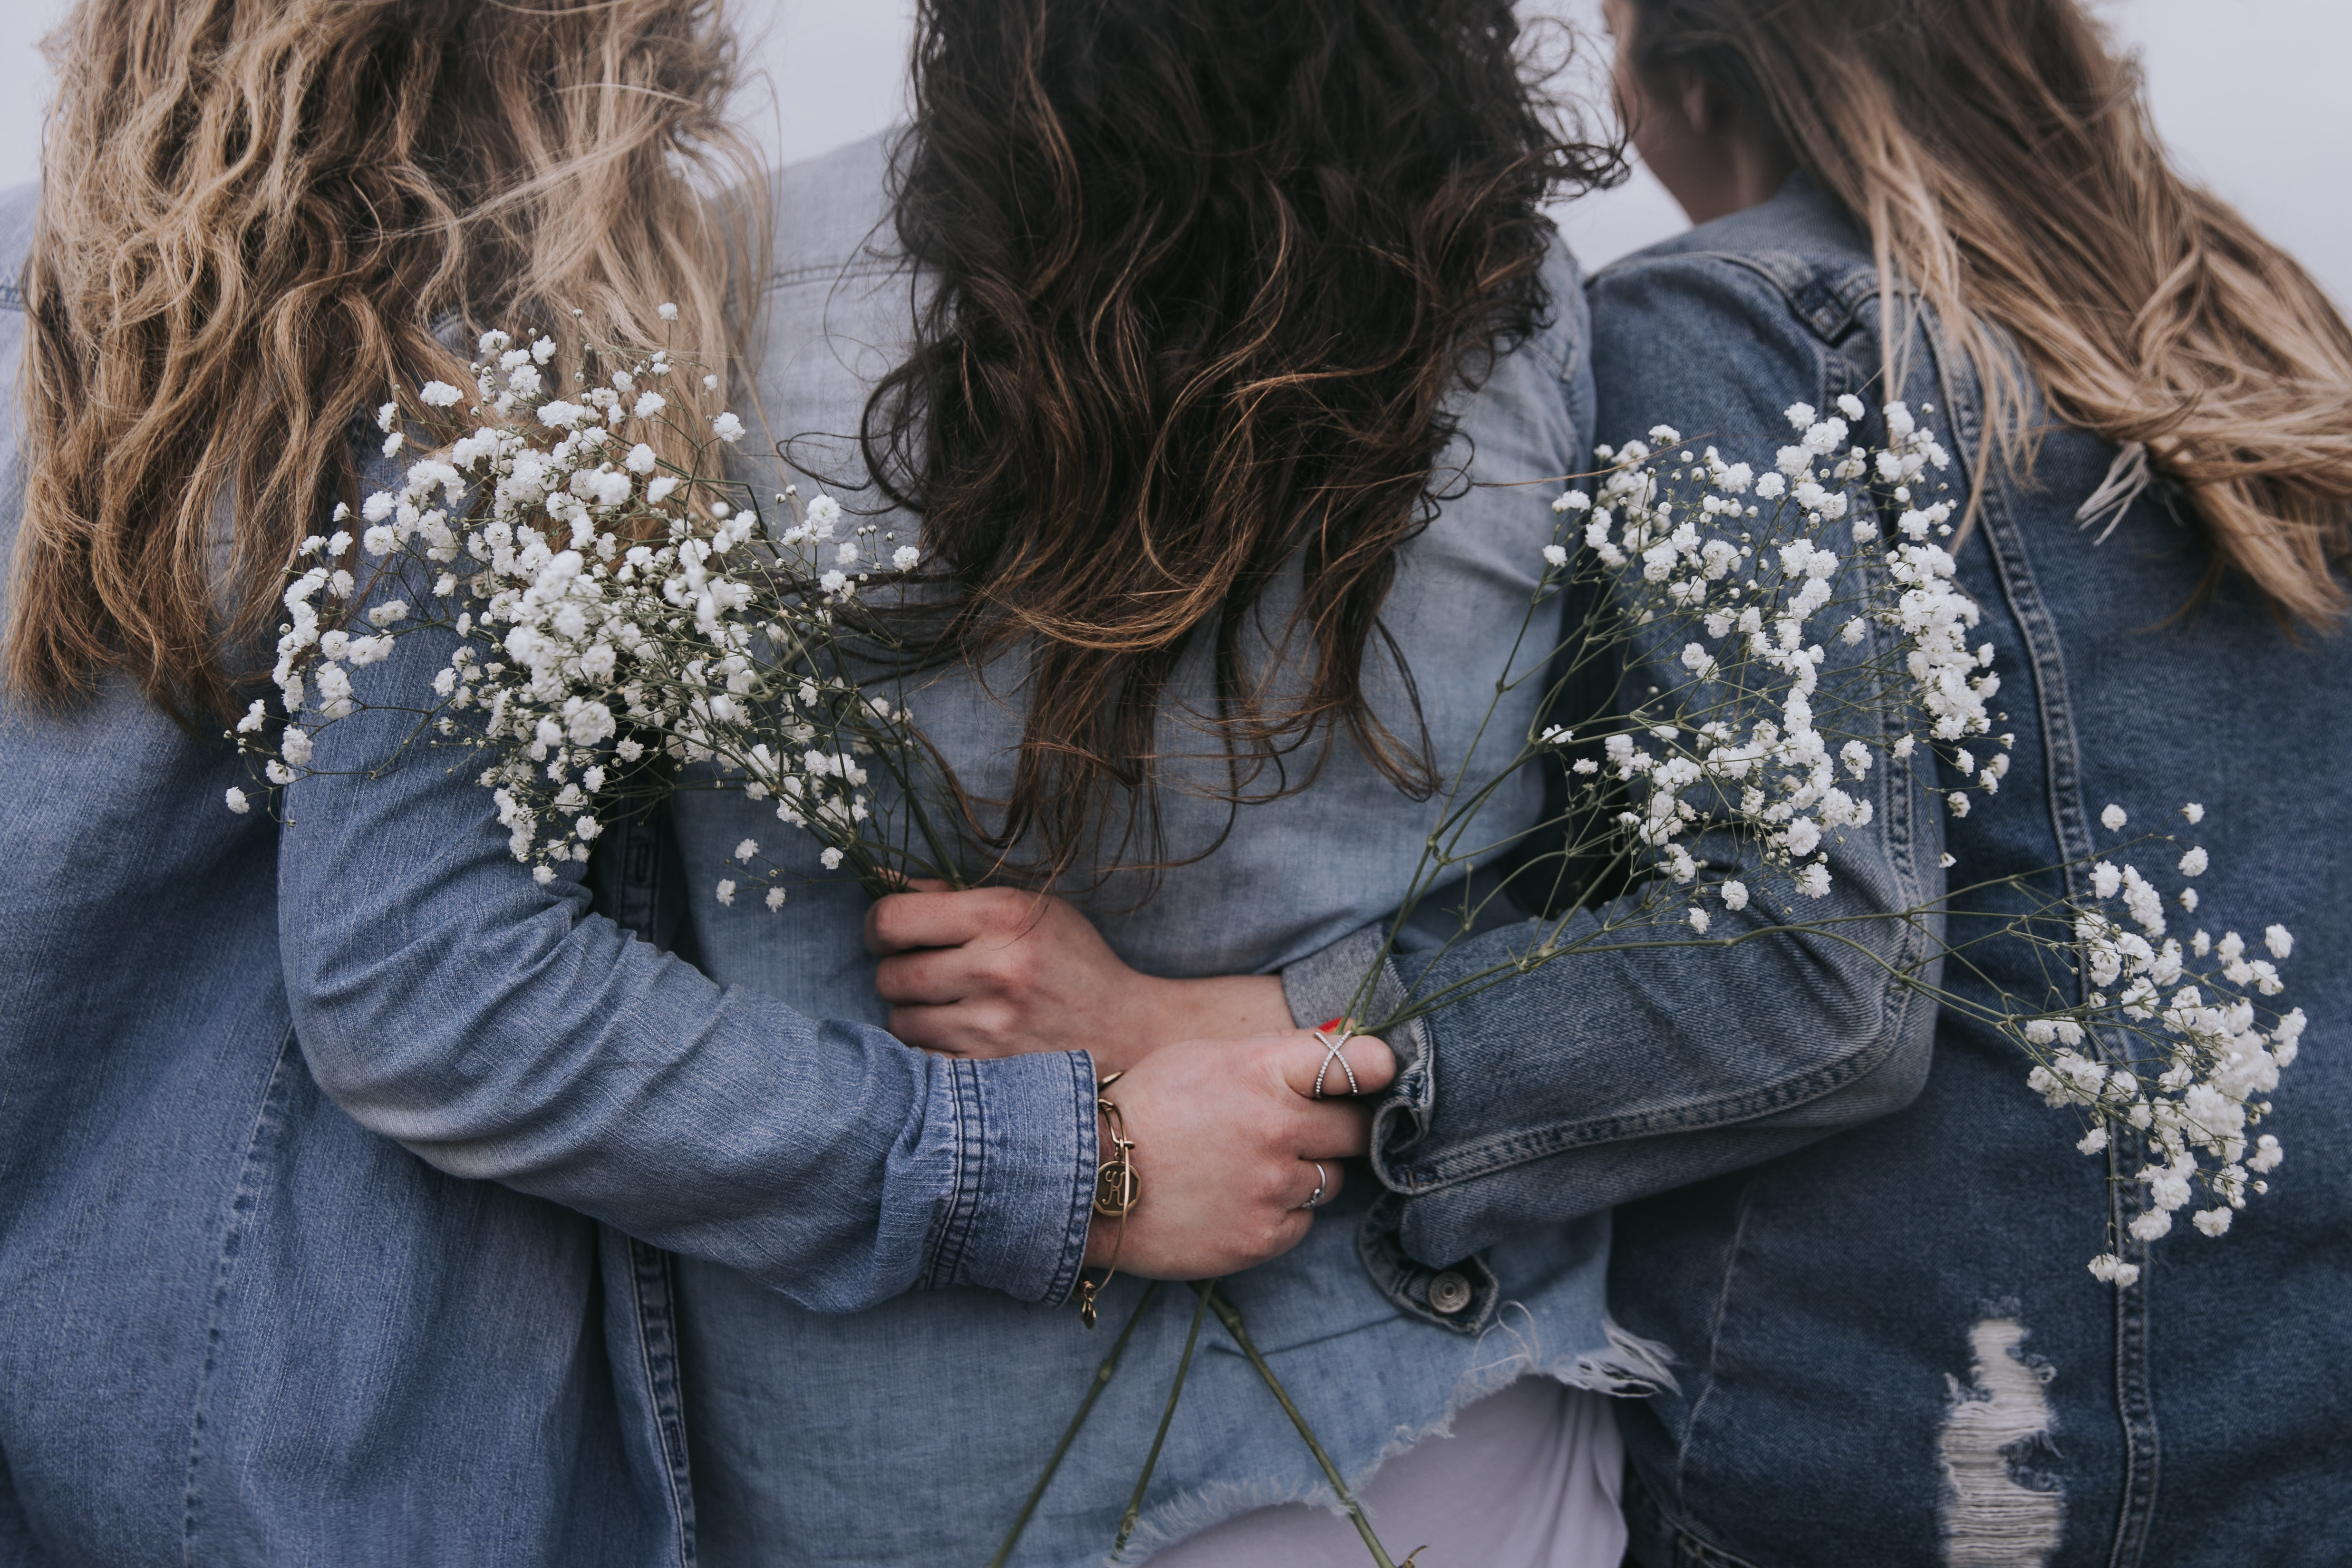 Three women holding each other, all wearing denim jackets.